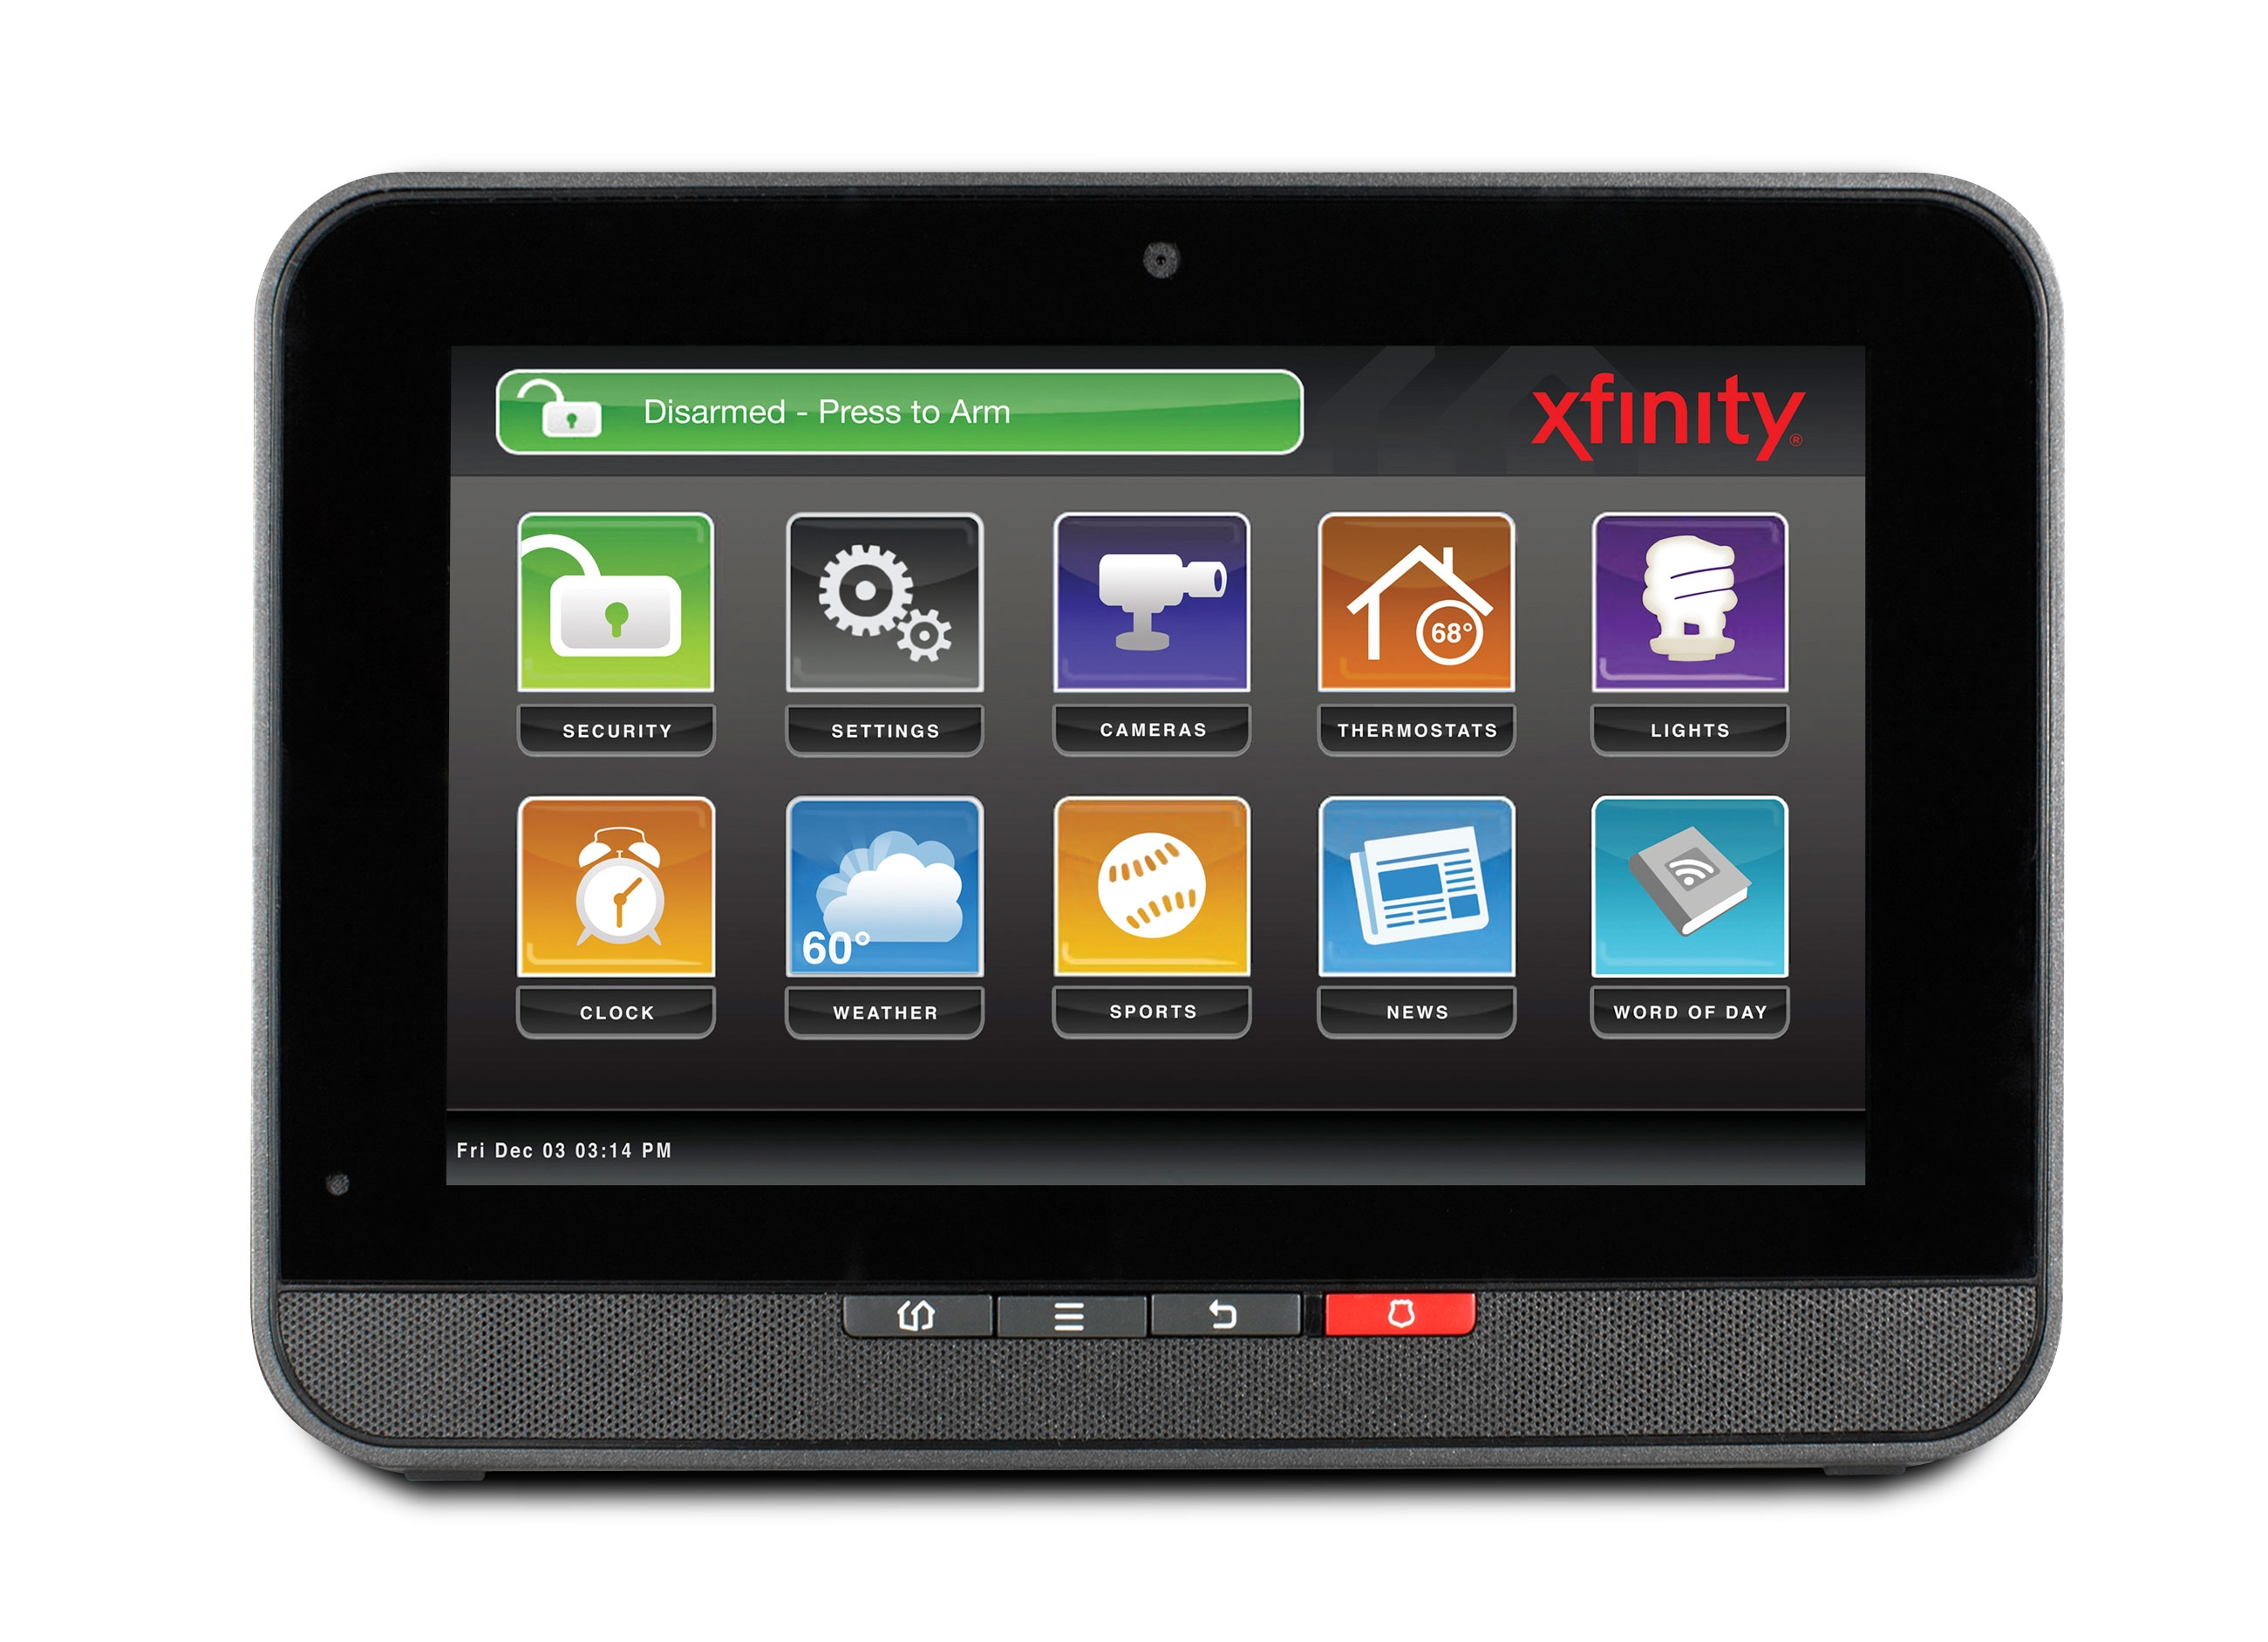 Comcast Gets A Lot Of Things Right With Its Xfinity